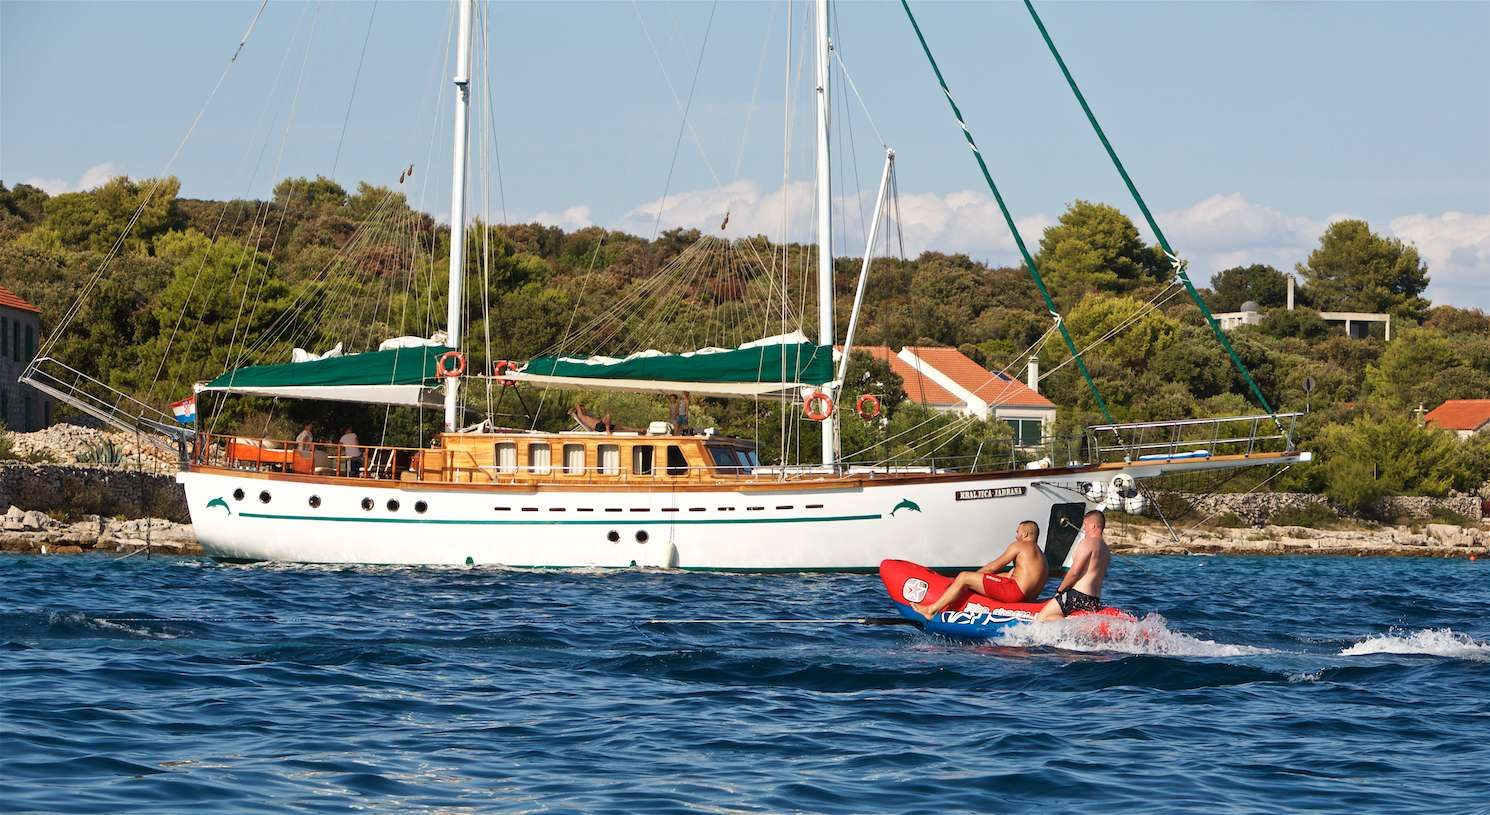 Queen of Adriatic Yacht Charter - Ritzy Charters